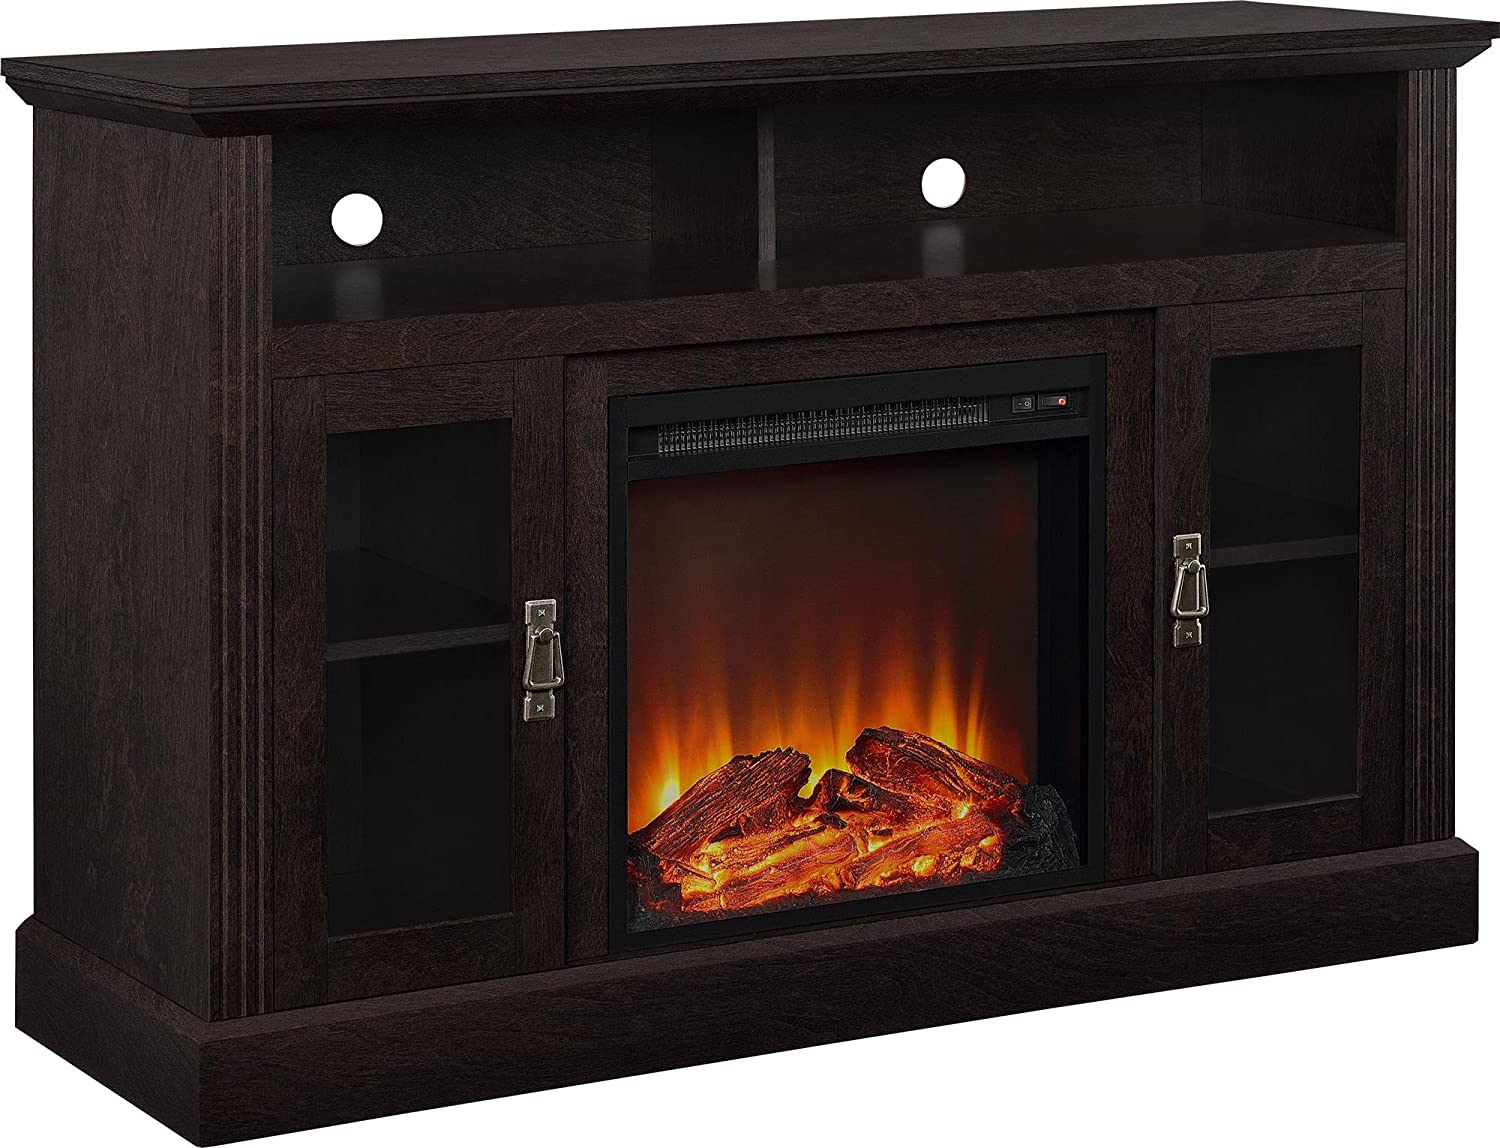 Altra Furniture Ameriwood Home Chicago Electric Fireplace TV Console for TVs up to a 50